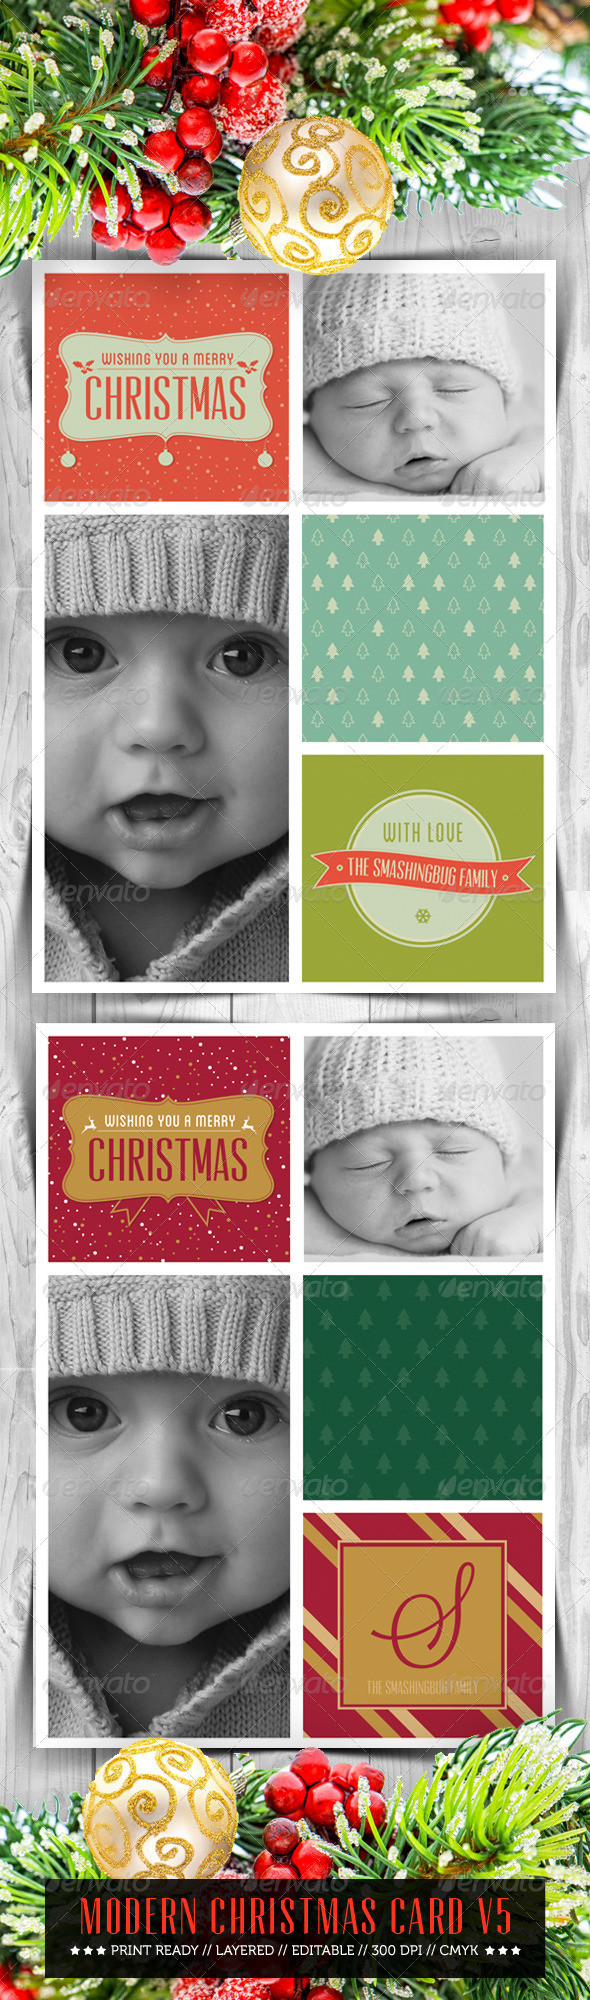 GraphicRiver Modern Christmas Card V5 6354422